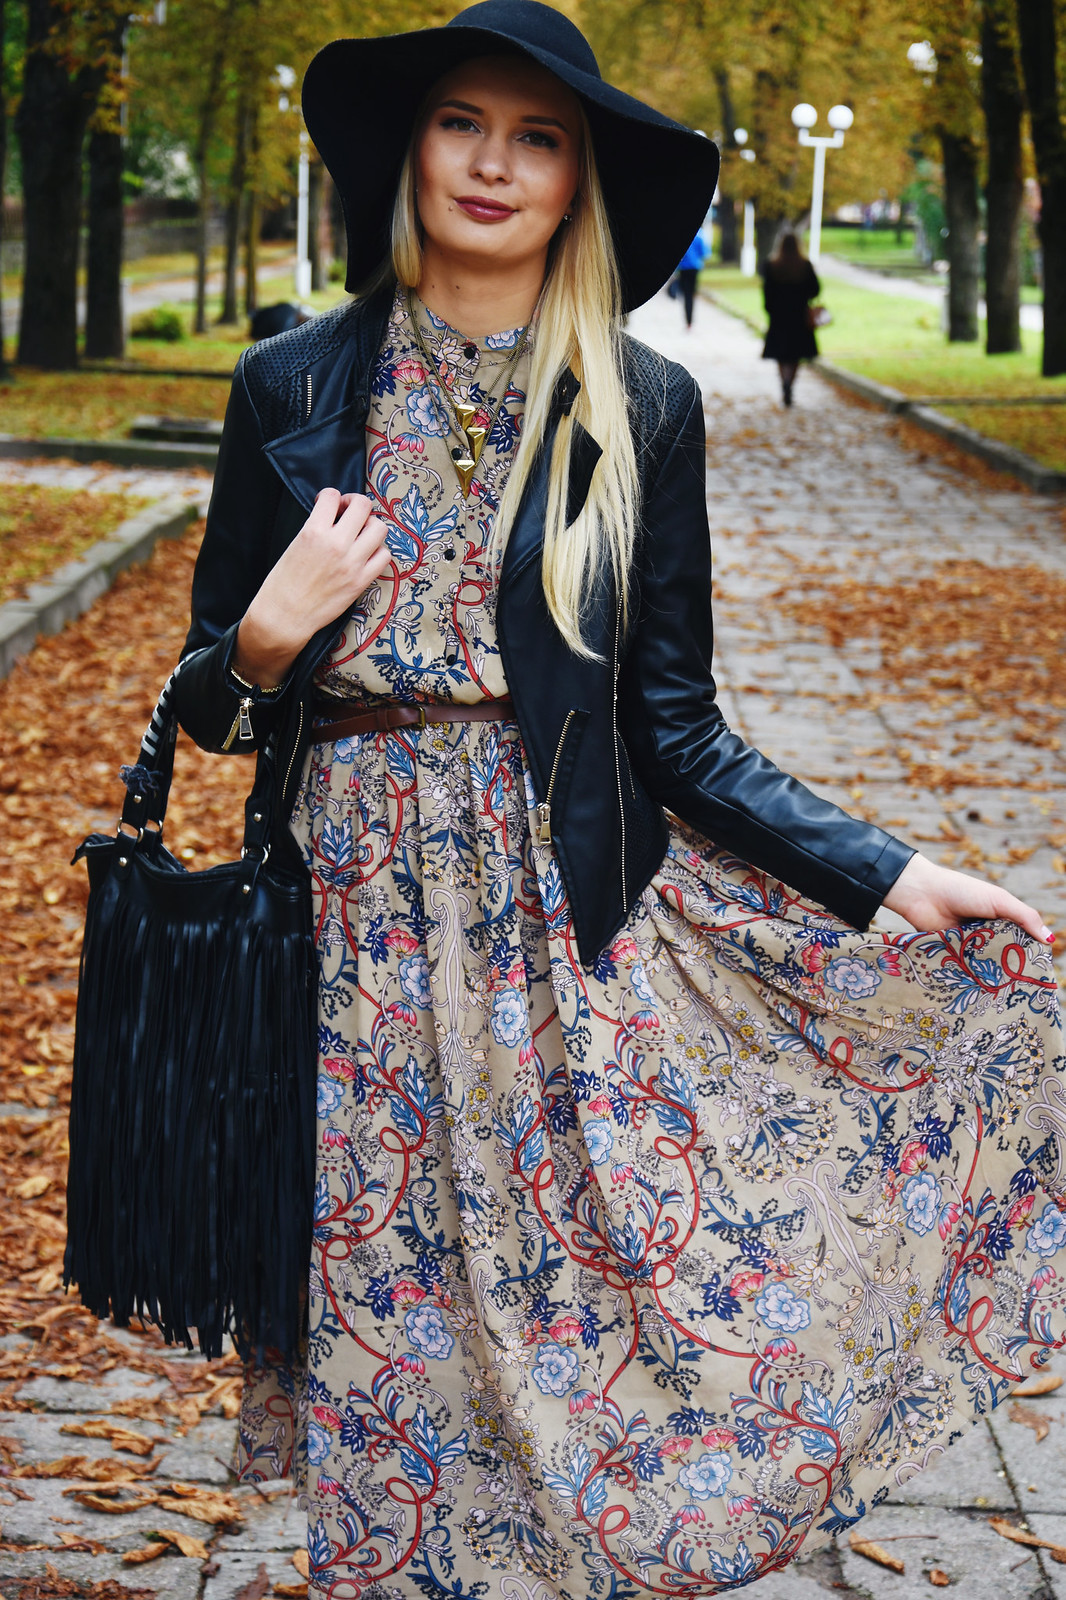 Zaful style outfit